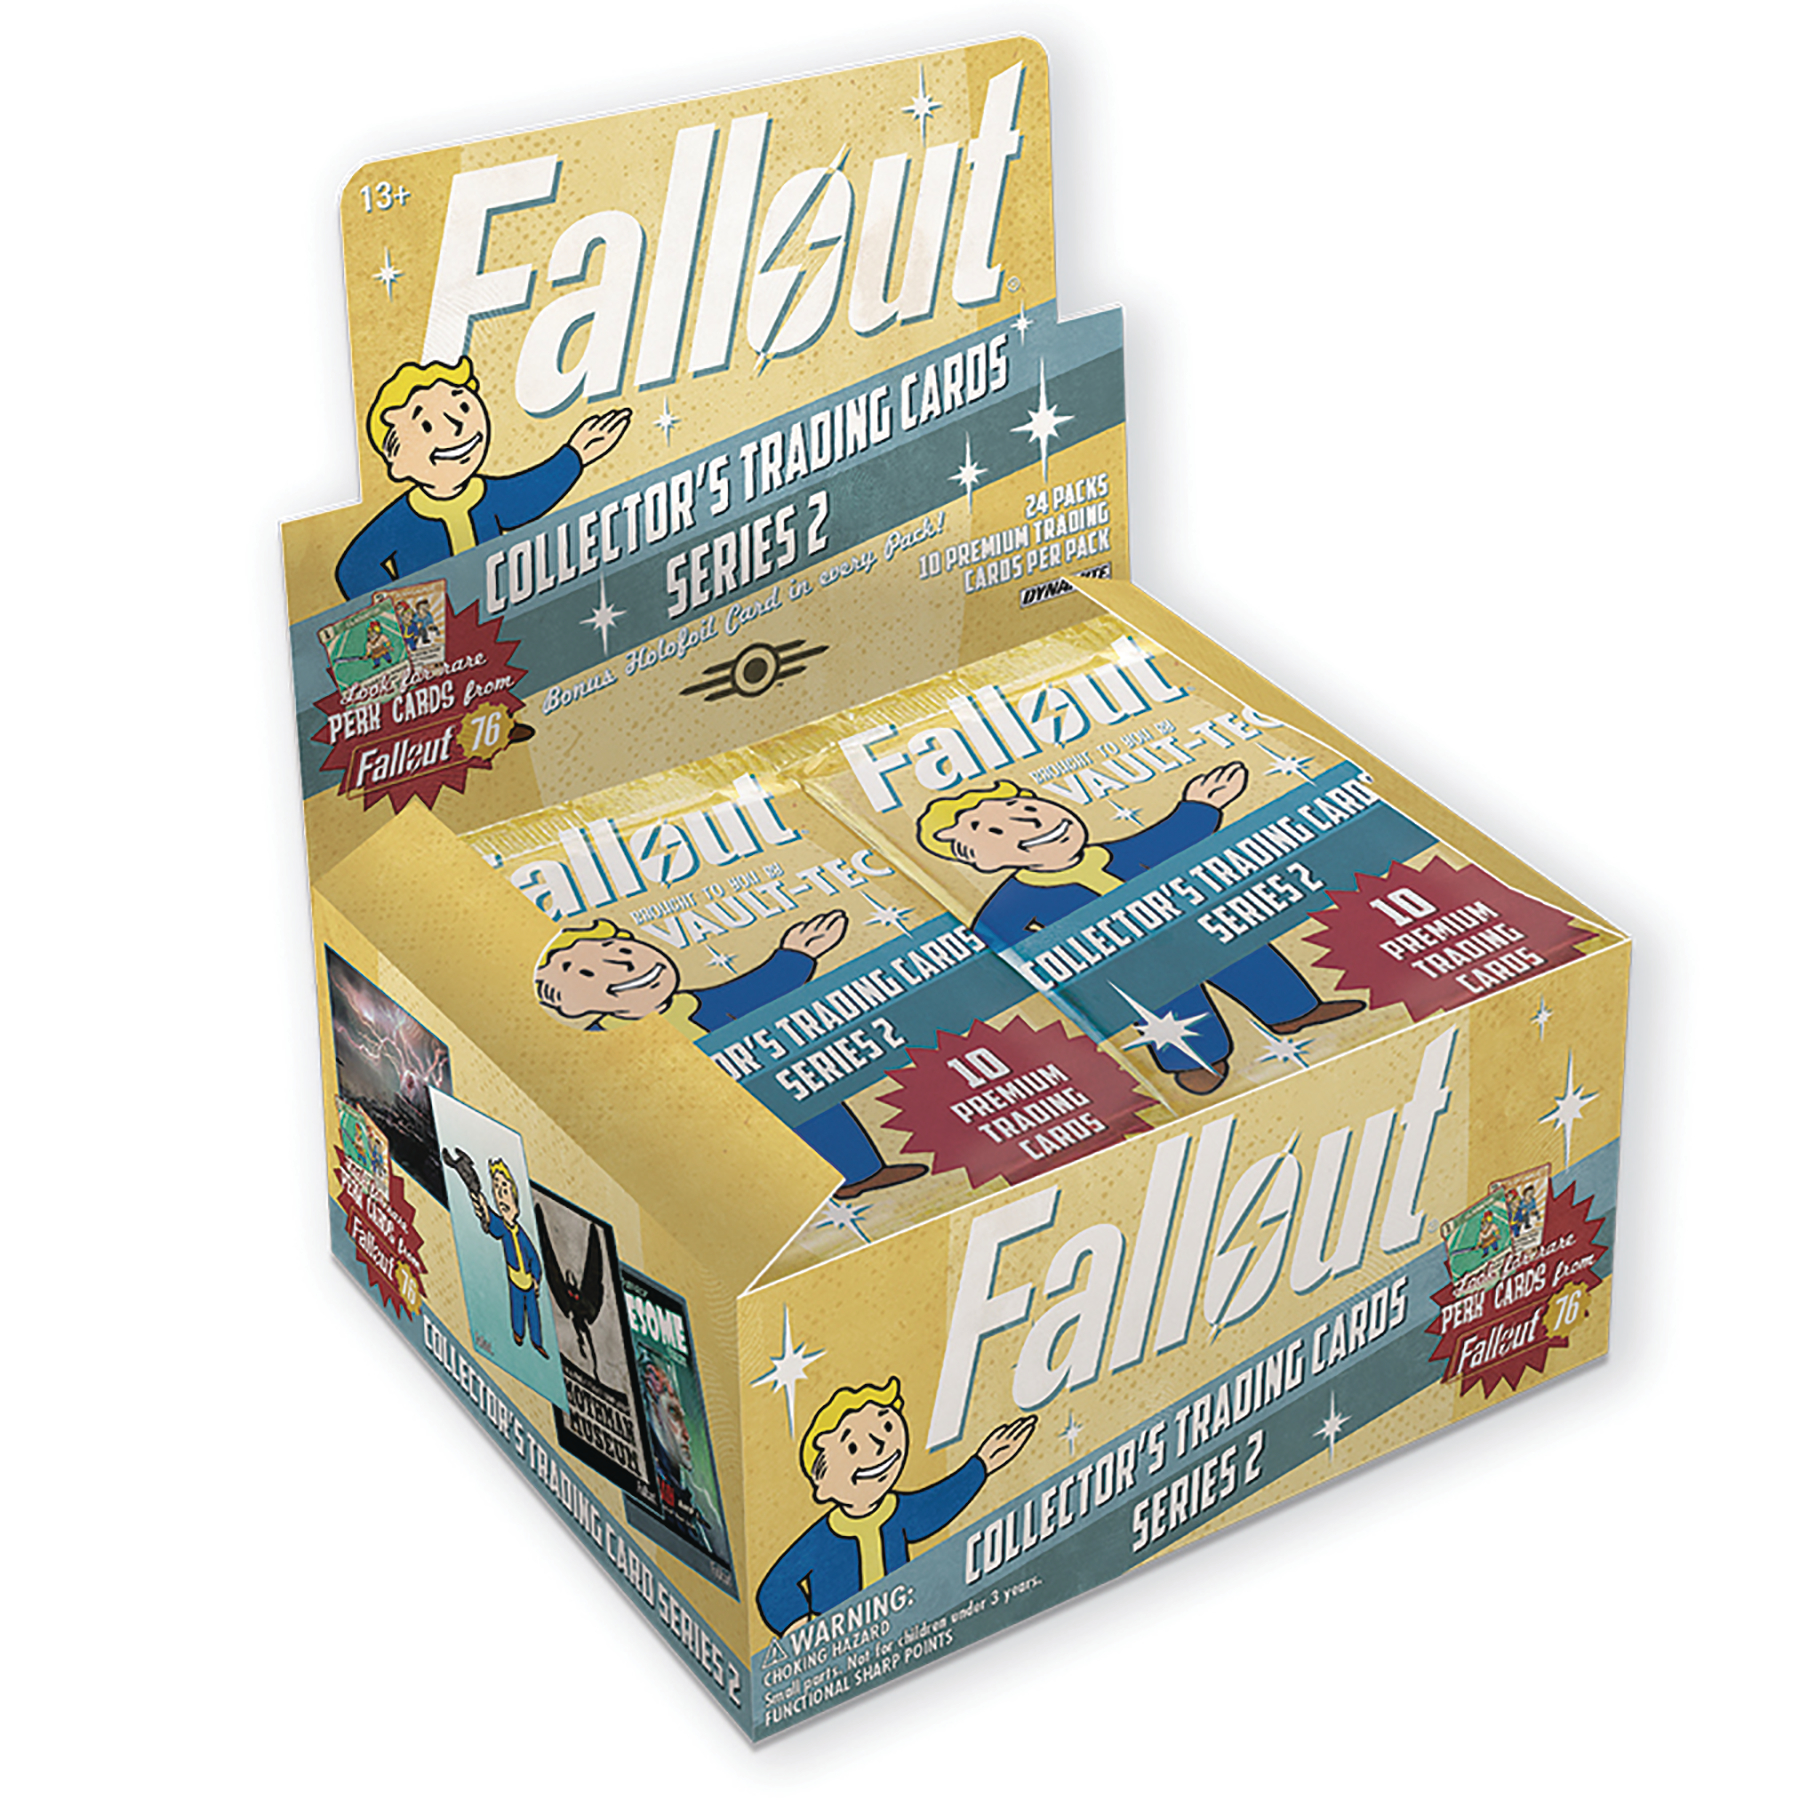 FALLOUT TRADING CARD SERIES 2 BOX